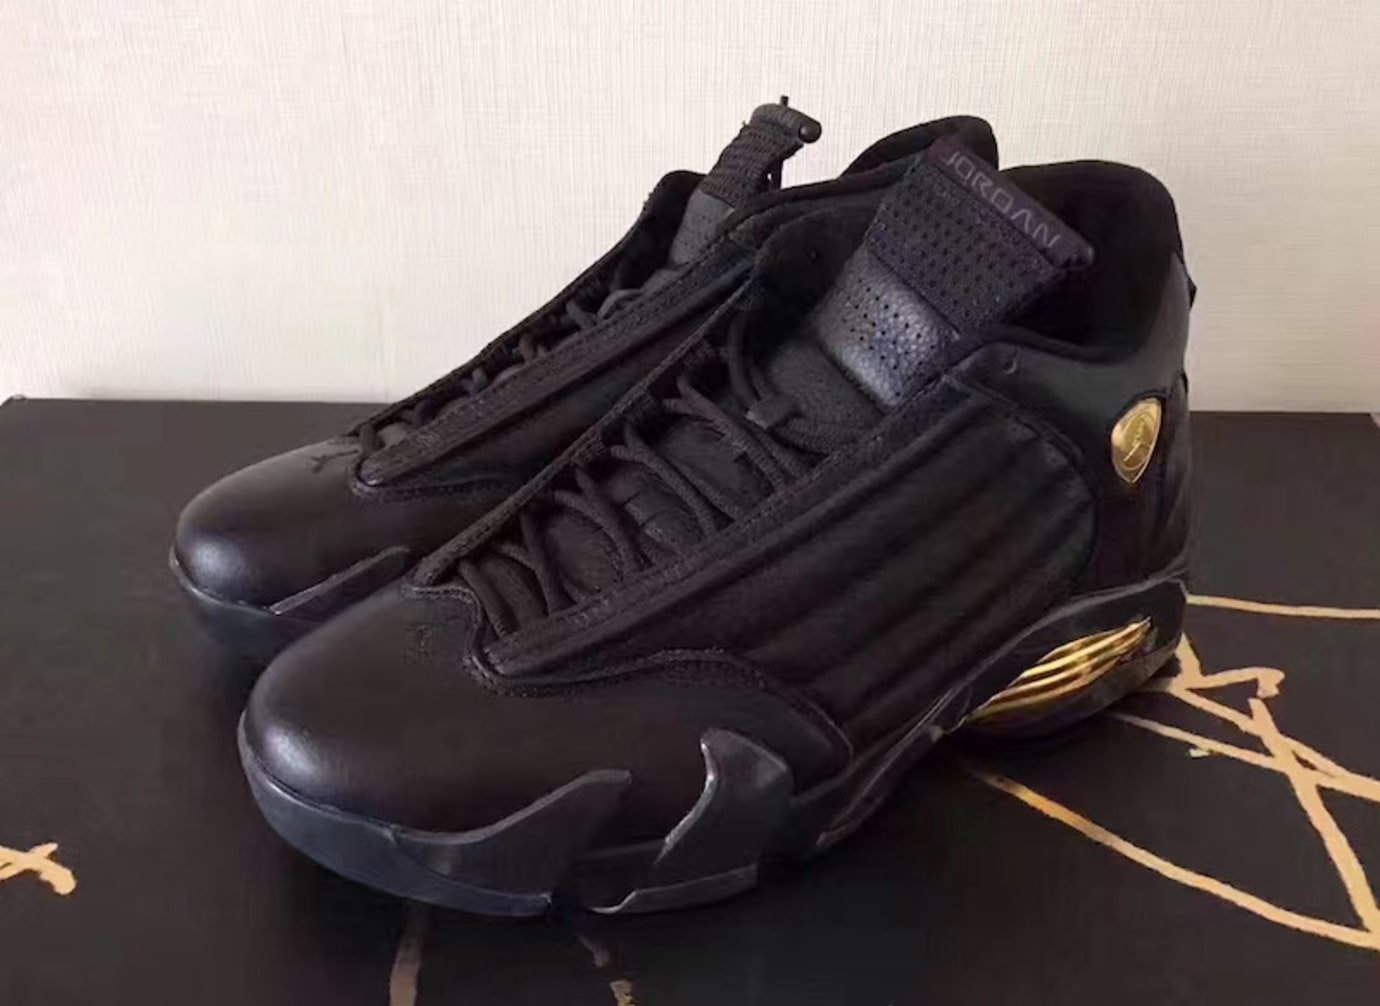 buy popular e309a 94d94 Air Jordan 14 Defining Moments Black Gold Release Date 487471-022 (3)